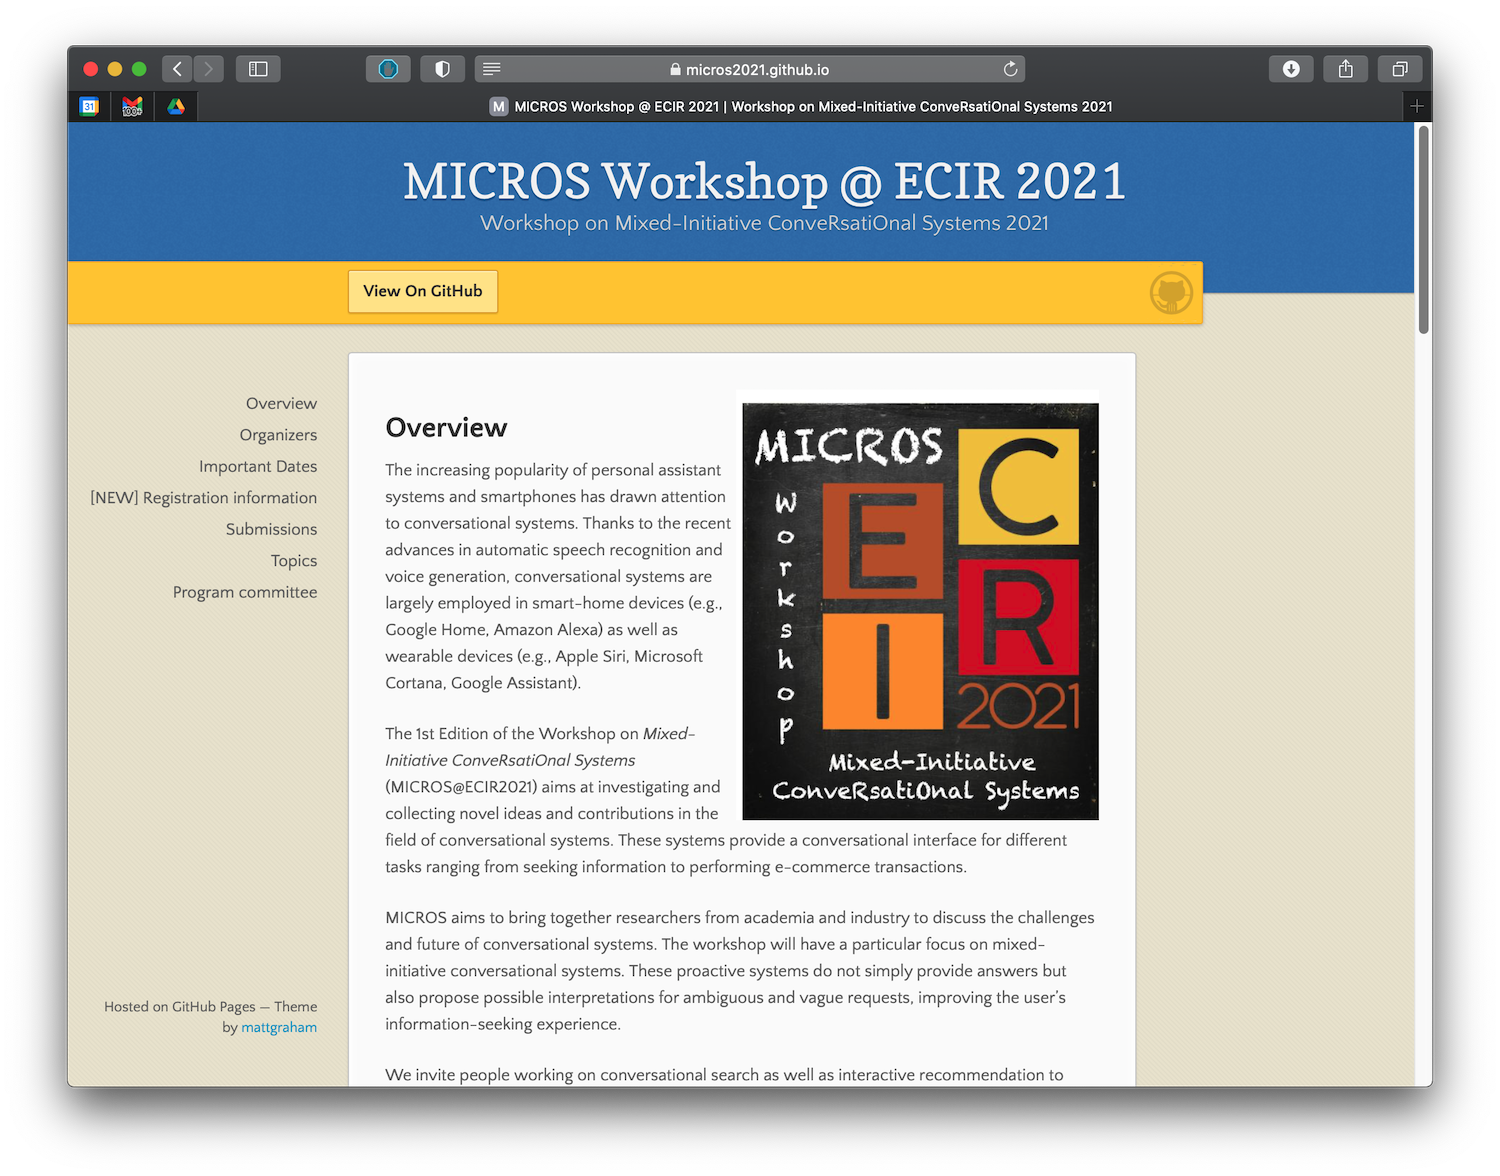 Two Papers Accepted at MICROS Workshop at ECIR 2021